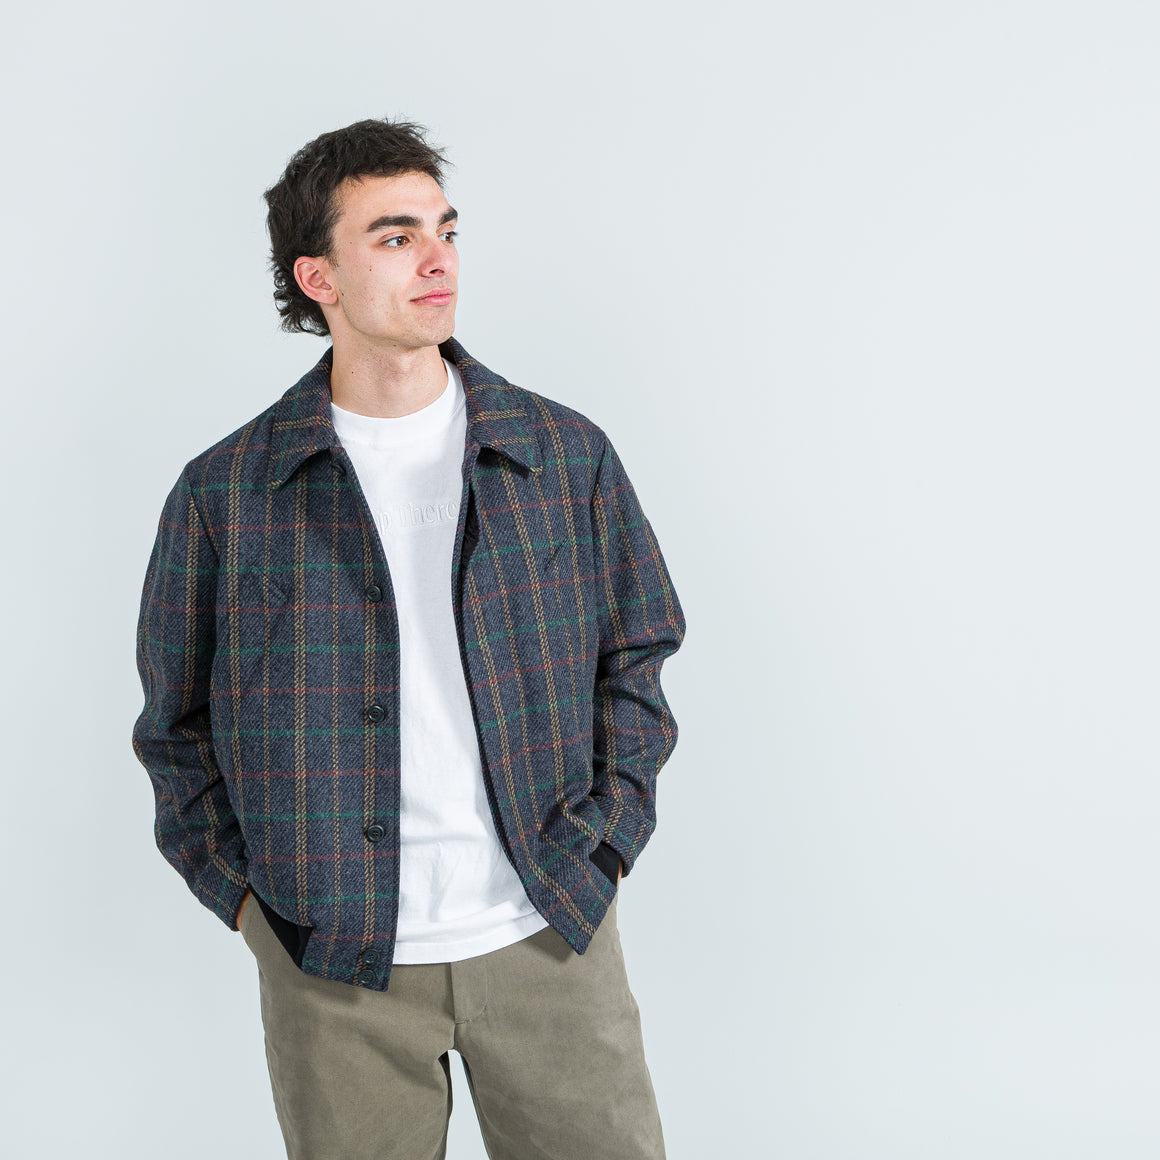 4SDesigns - Raglan Bomber - Blue Multicolour Plaid Melton - Up There